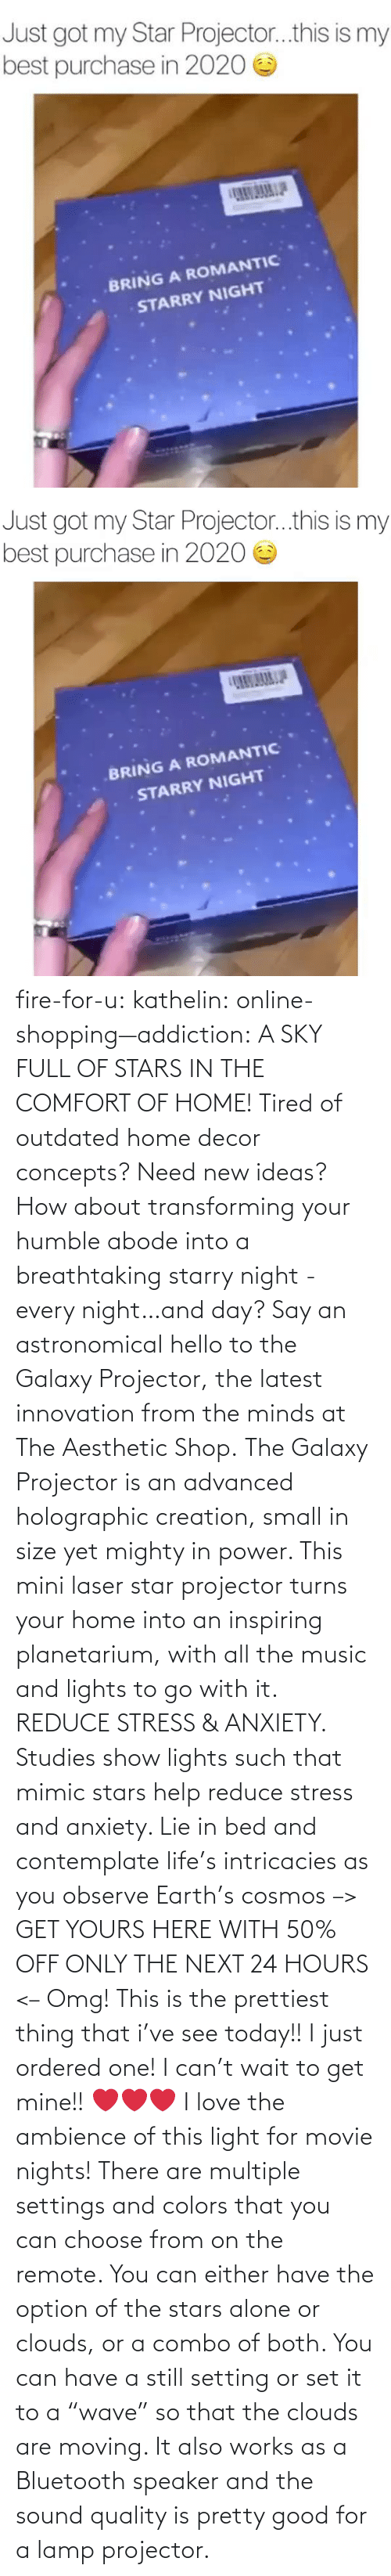 "Have A: fire-for-u:  kathelin: online-shopping—addiction:  A SKY FULL OF STARS IN THE COMFORT OF HOME! Tired of outdated home decor concepts? Need new ideas? How about transforming your humble abode into a breathtaking starry night - every night…and day? Say an astronomical hello to the Galaxy Projector, the latest innovation from the minds at The Aesthetic Shop. The Galaxy Projector is an advanced holographic creation, small in size yet mighty in power. This mini laser star projector turns your home into an inspiring planetarium, with all the music and lights to go with it. REDUCE STRESS & ANXIETY. Studies show lights such that mimic stars help reduce stress and anxiety. Lie in bed and contemplate life's intricacies as you observe Earth's cosmos  –> GET YOURS HERE WITH 50% OFF ONLY THE NEXT 24 HOURS <–   Omg! This is the prettiest thing that i've see today!! I just ordered one! I can't wait to get mine!! ❤️️❤️️❤️️  I love the ambience of this light for movie nights! There are multiple settings and colors that you can choose from on the remote. You can either have the option of the stars alone or clouds, or a combo of both. You can have a still setting or set it to a ""wave"" so that the clouds are moving. It also works as a Bluetooth speaker and the sound quality is pretty good for a lamp projector."